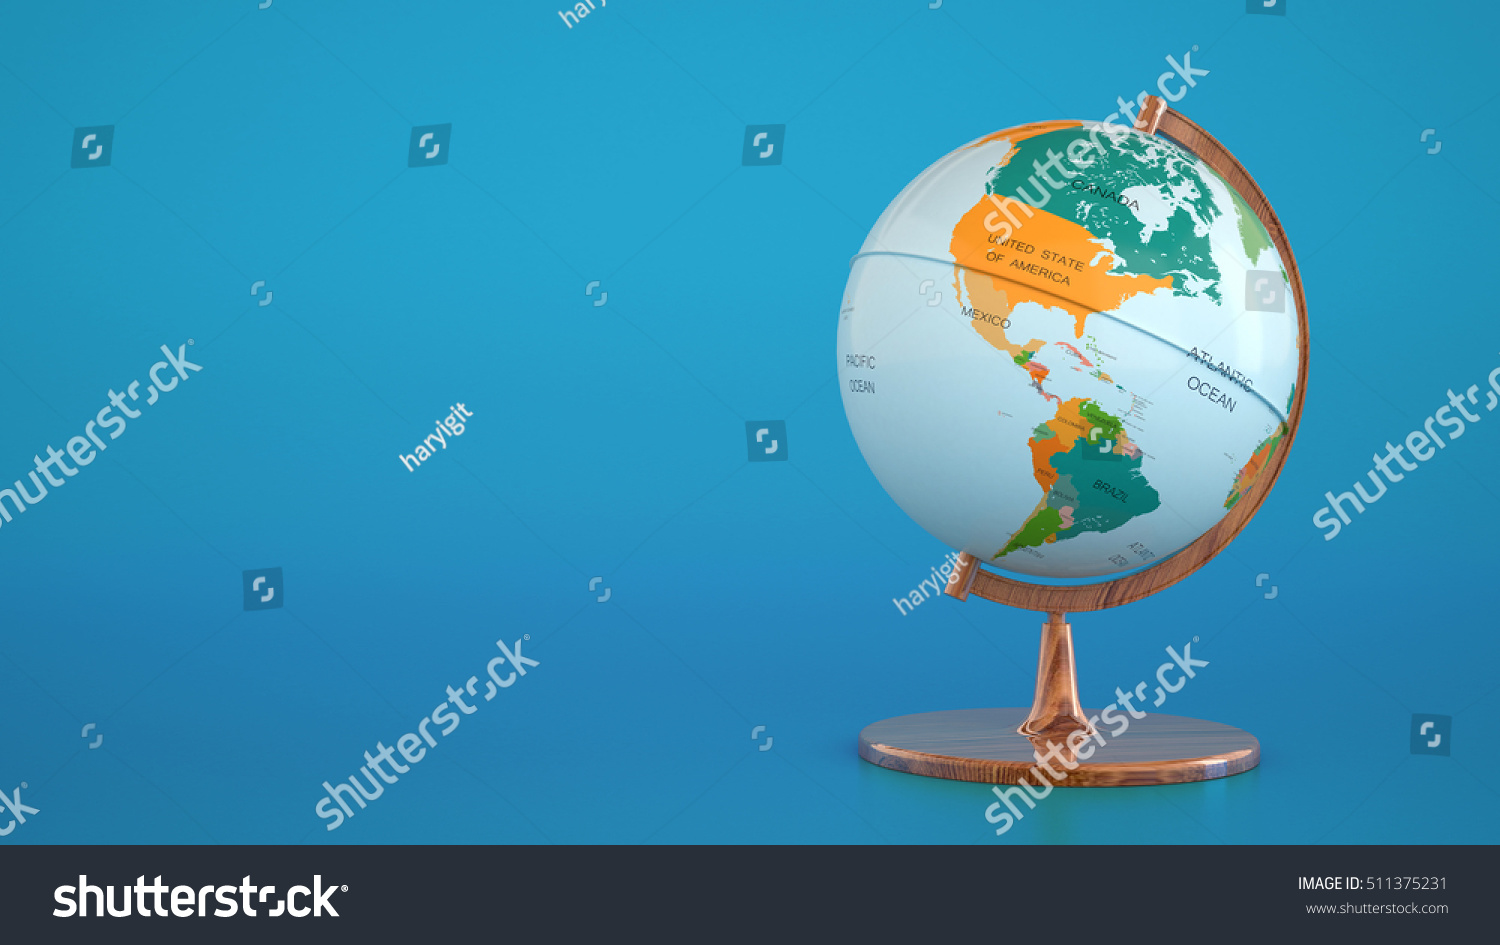 Globe geographical map on blue backgroundworld stock illustration globe with geographical map on blue background globe indicating america canada and brazil gumiabroncs Images